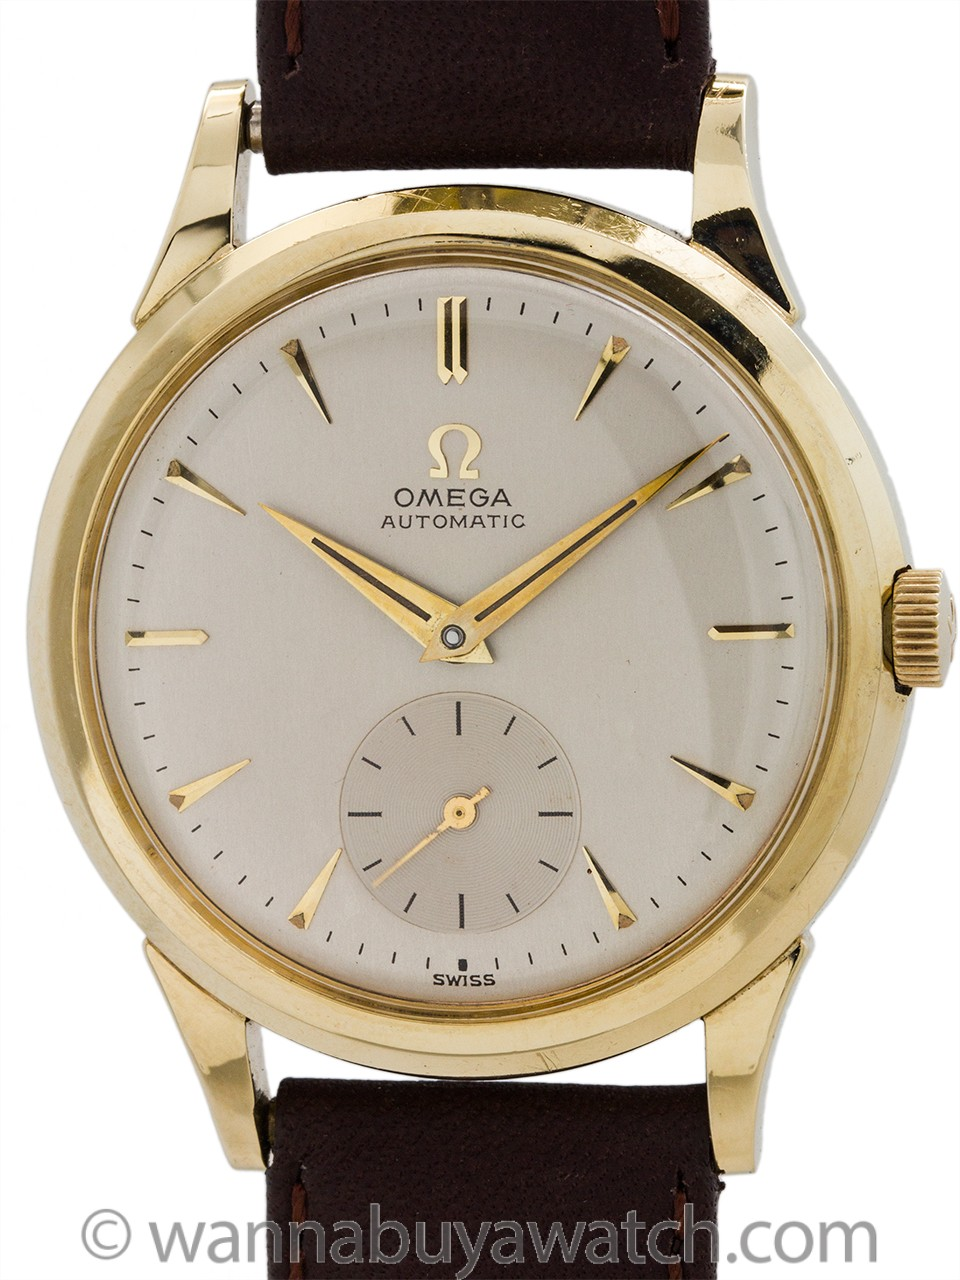 Omega Automatic Gold Shell circa 1954